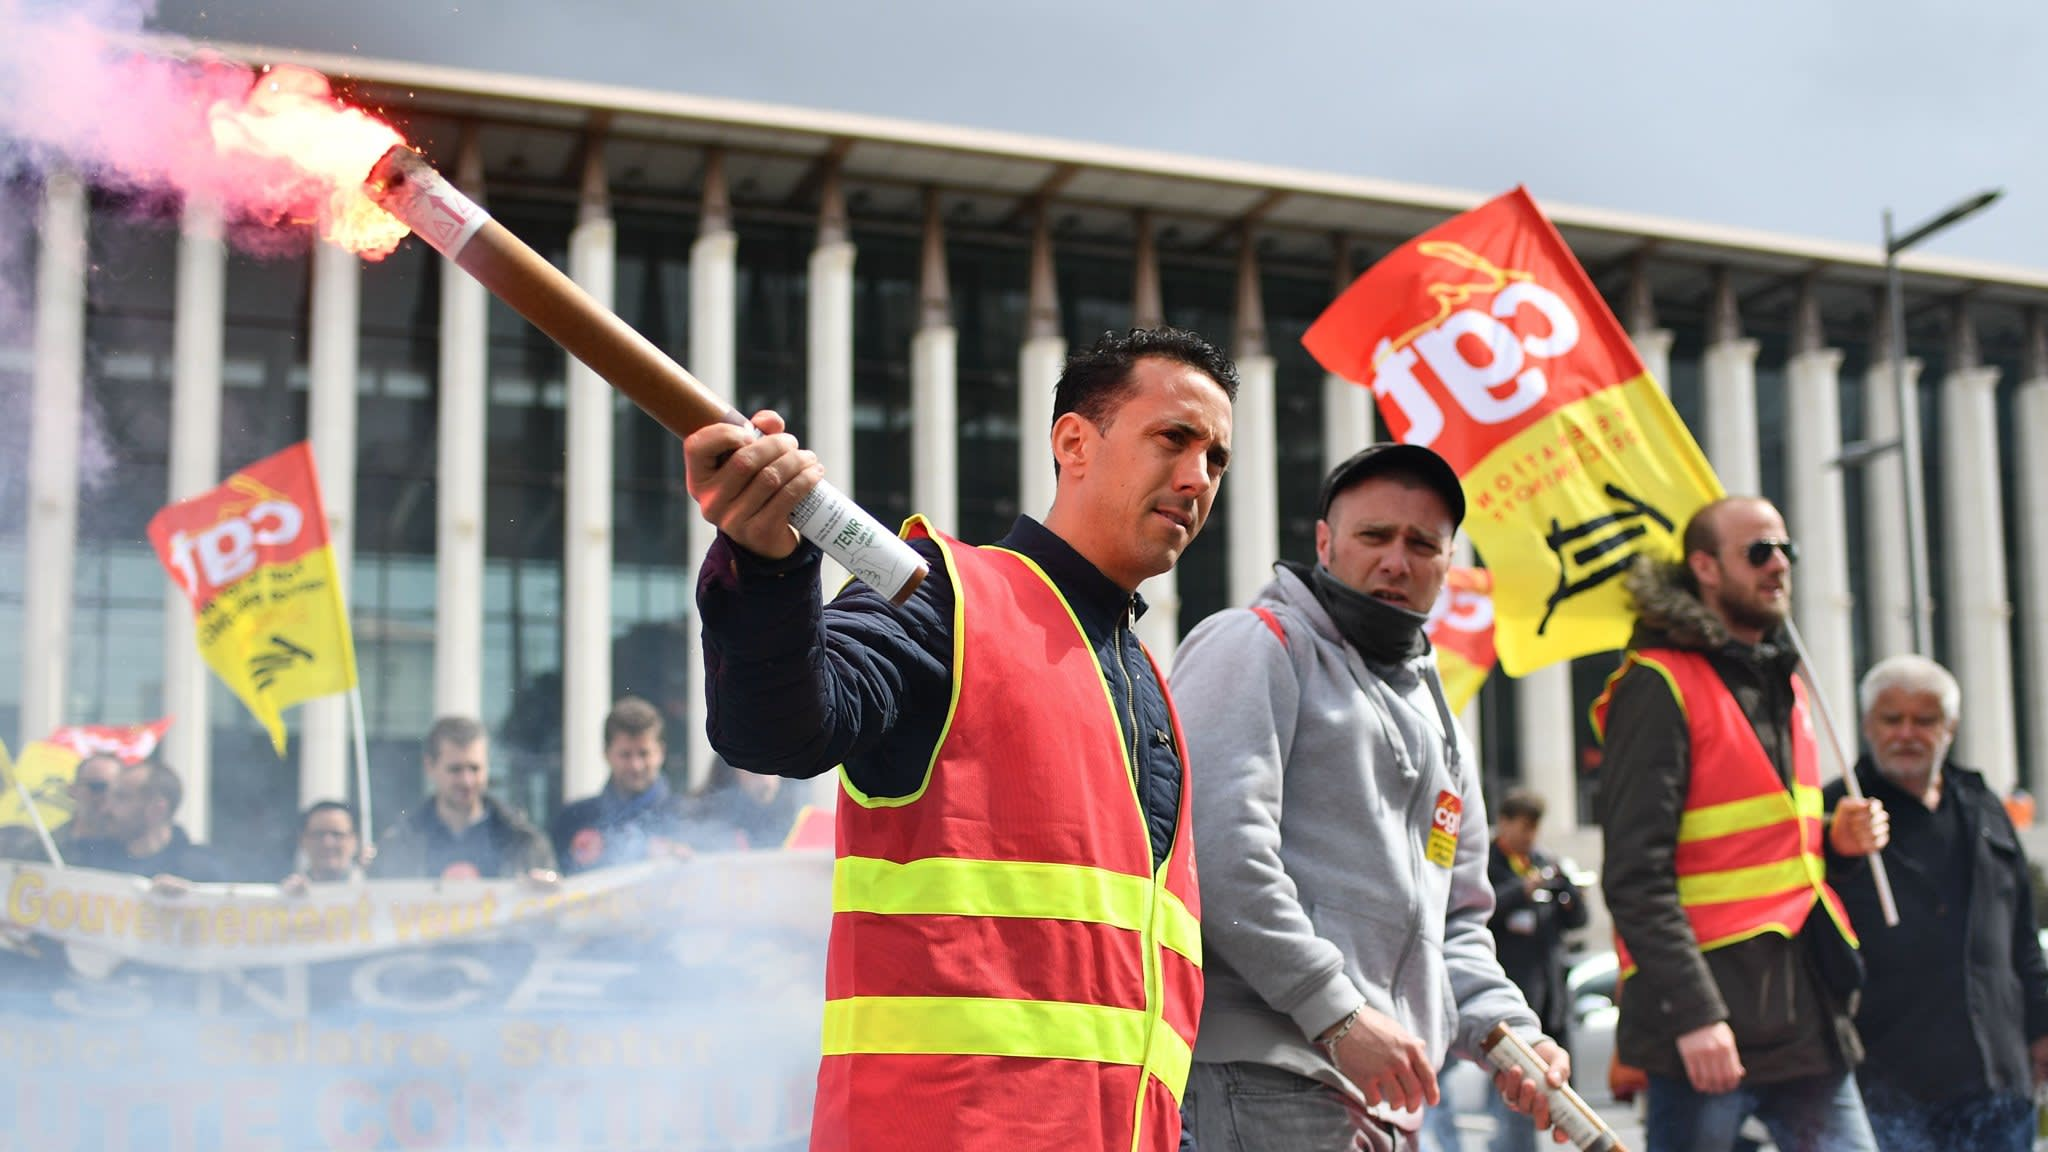 Macron puts reforms on line in rail union fight